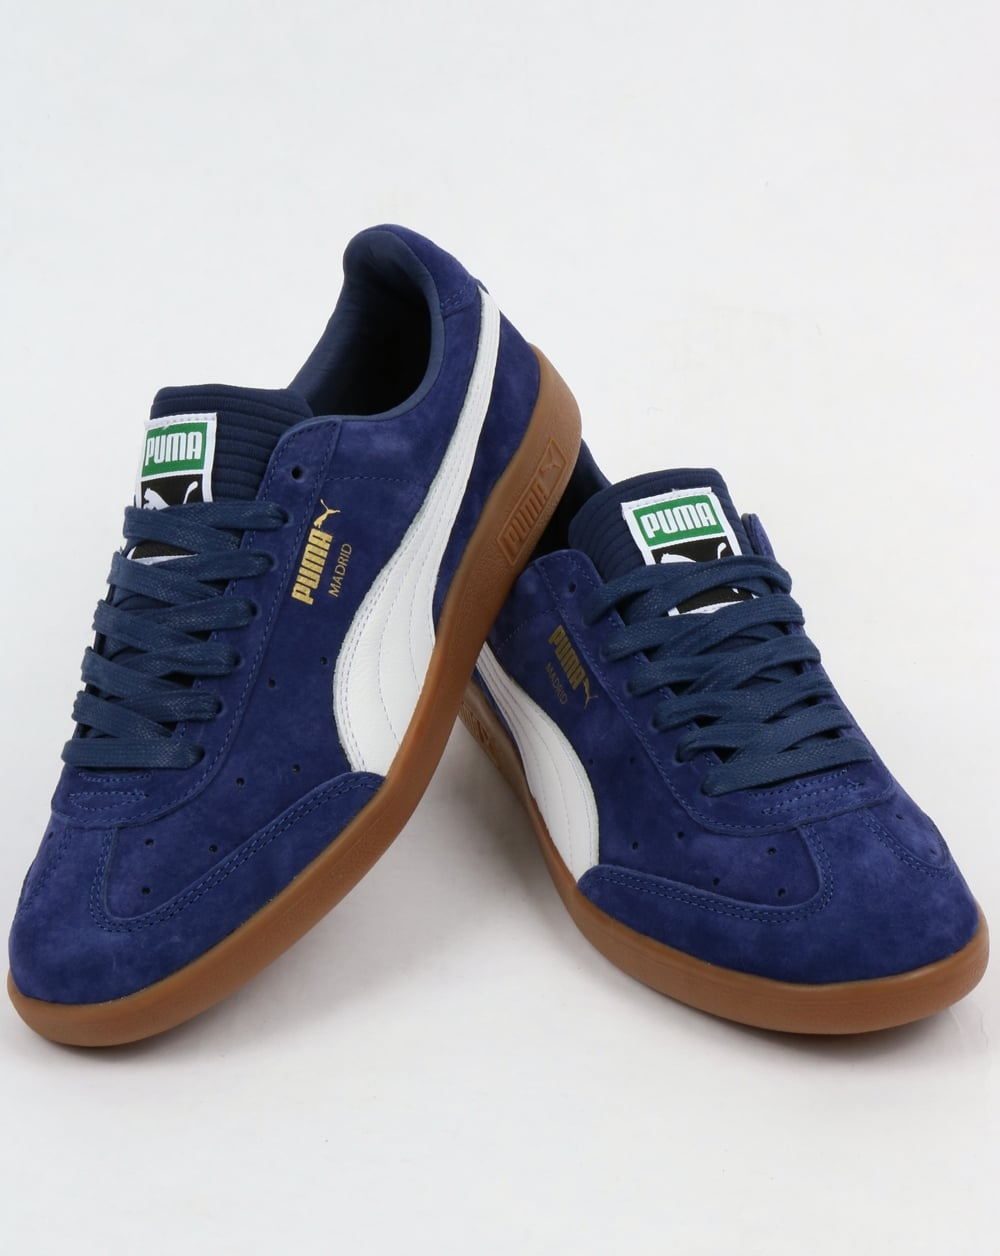 new style 827de ffdd1 Puma Madrid Lux Trainers Blue Depth/White